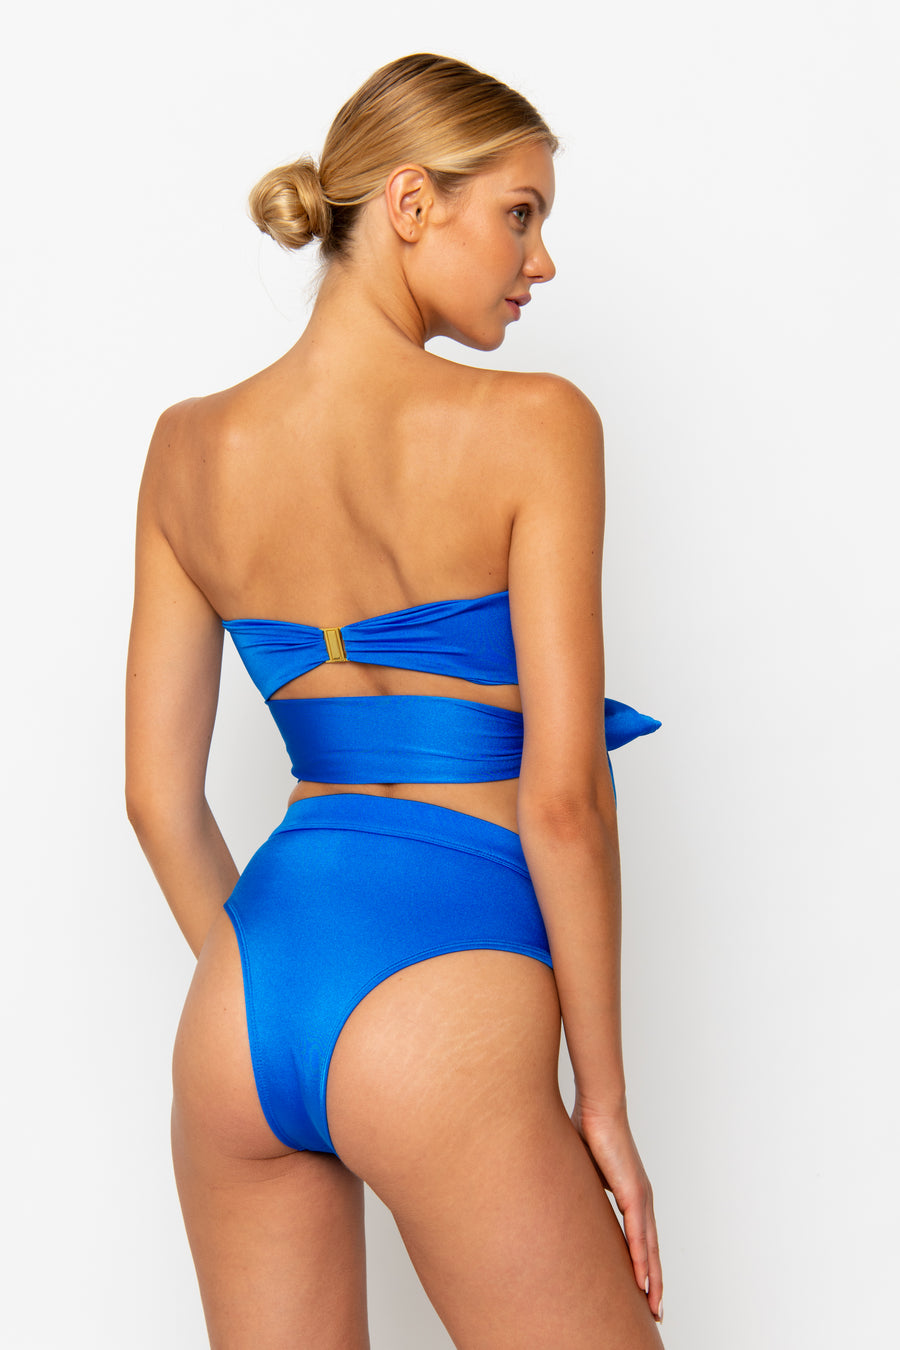 SIENNA Sirius - High Waisted Bikini Bottoms by Sommer Swim, available on sommerswim.com for $69 Kendall Jenner Shorts SIMILAR PRODUCT